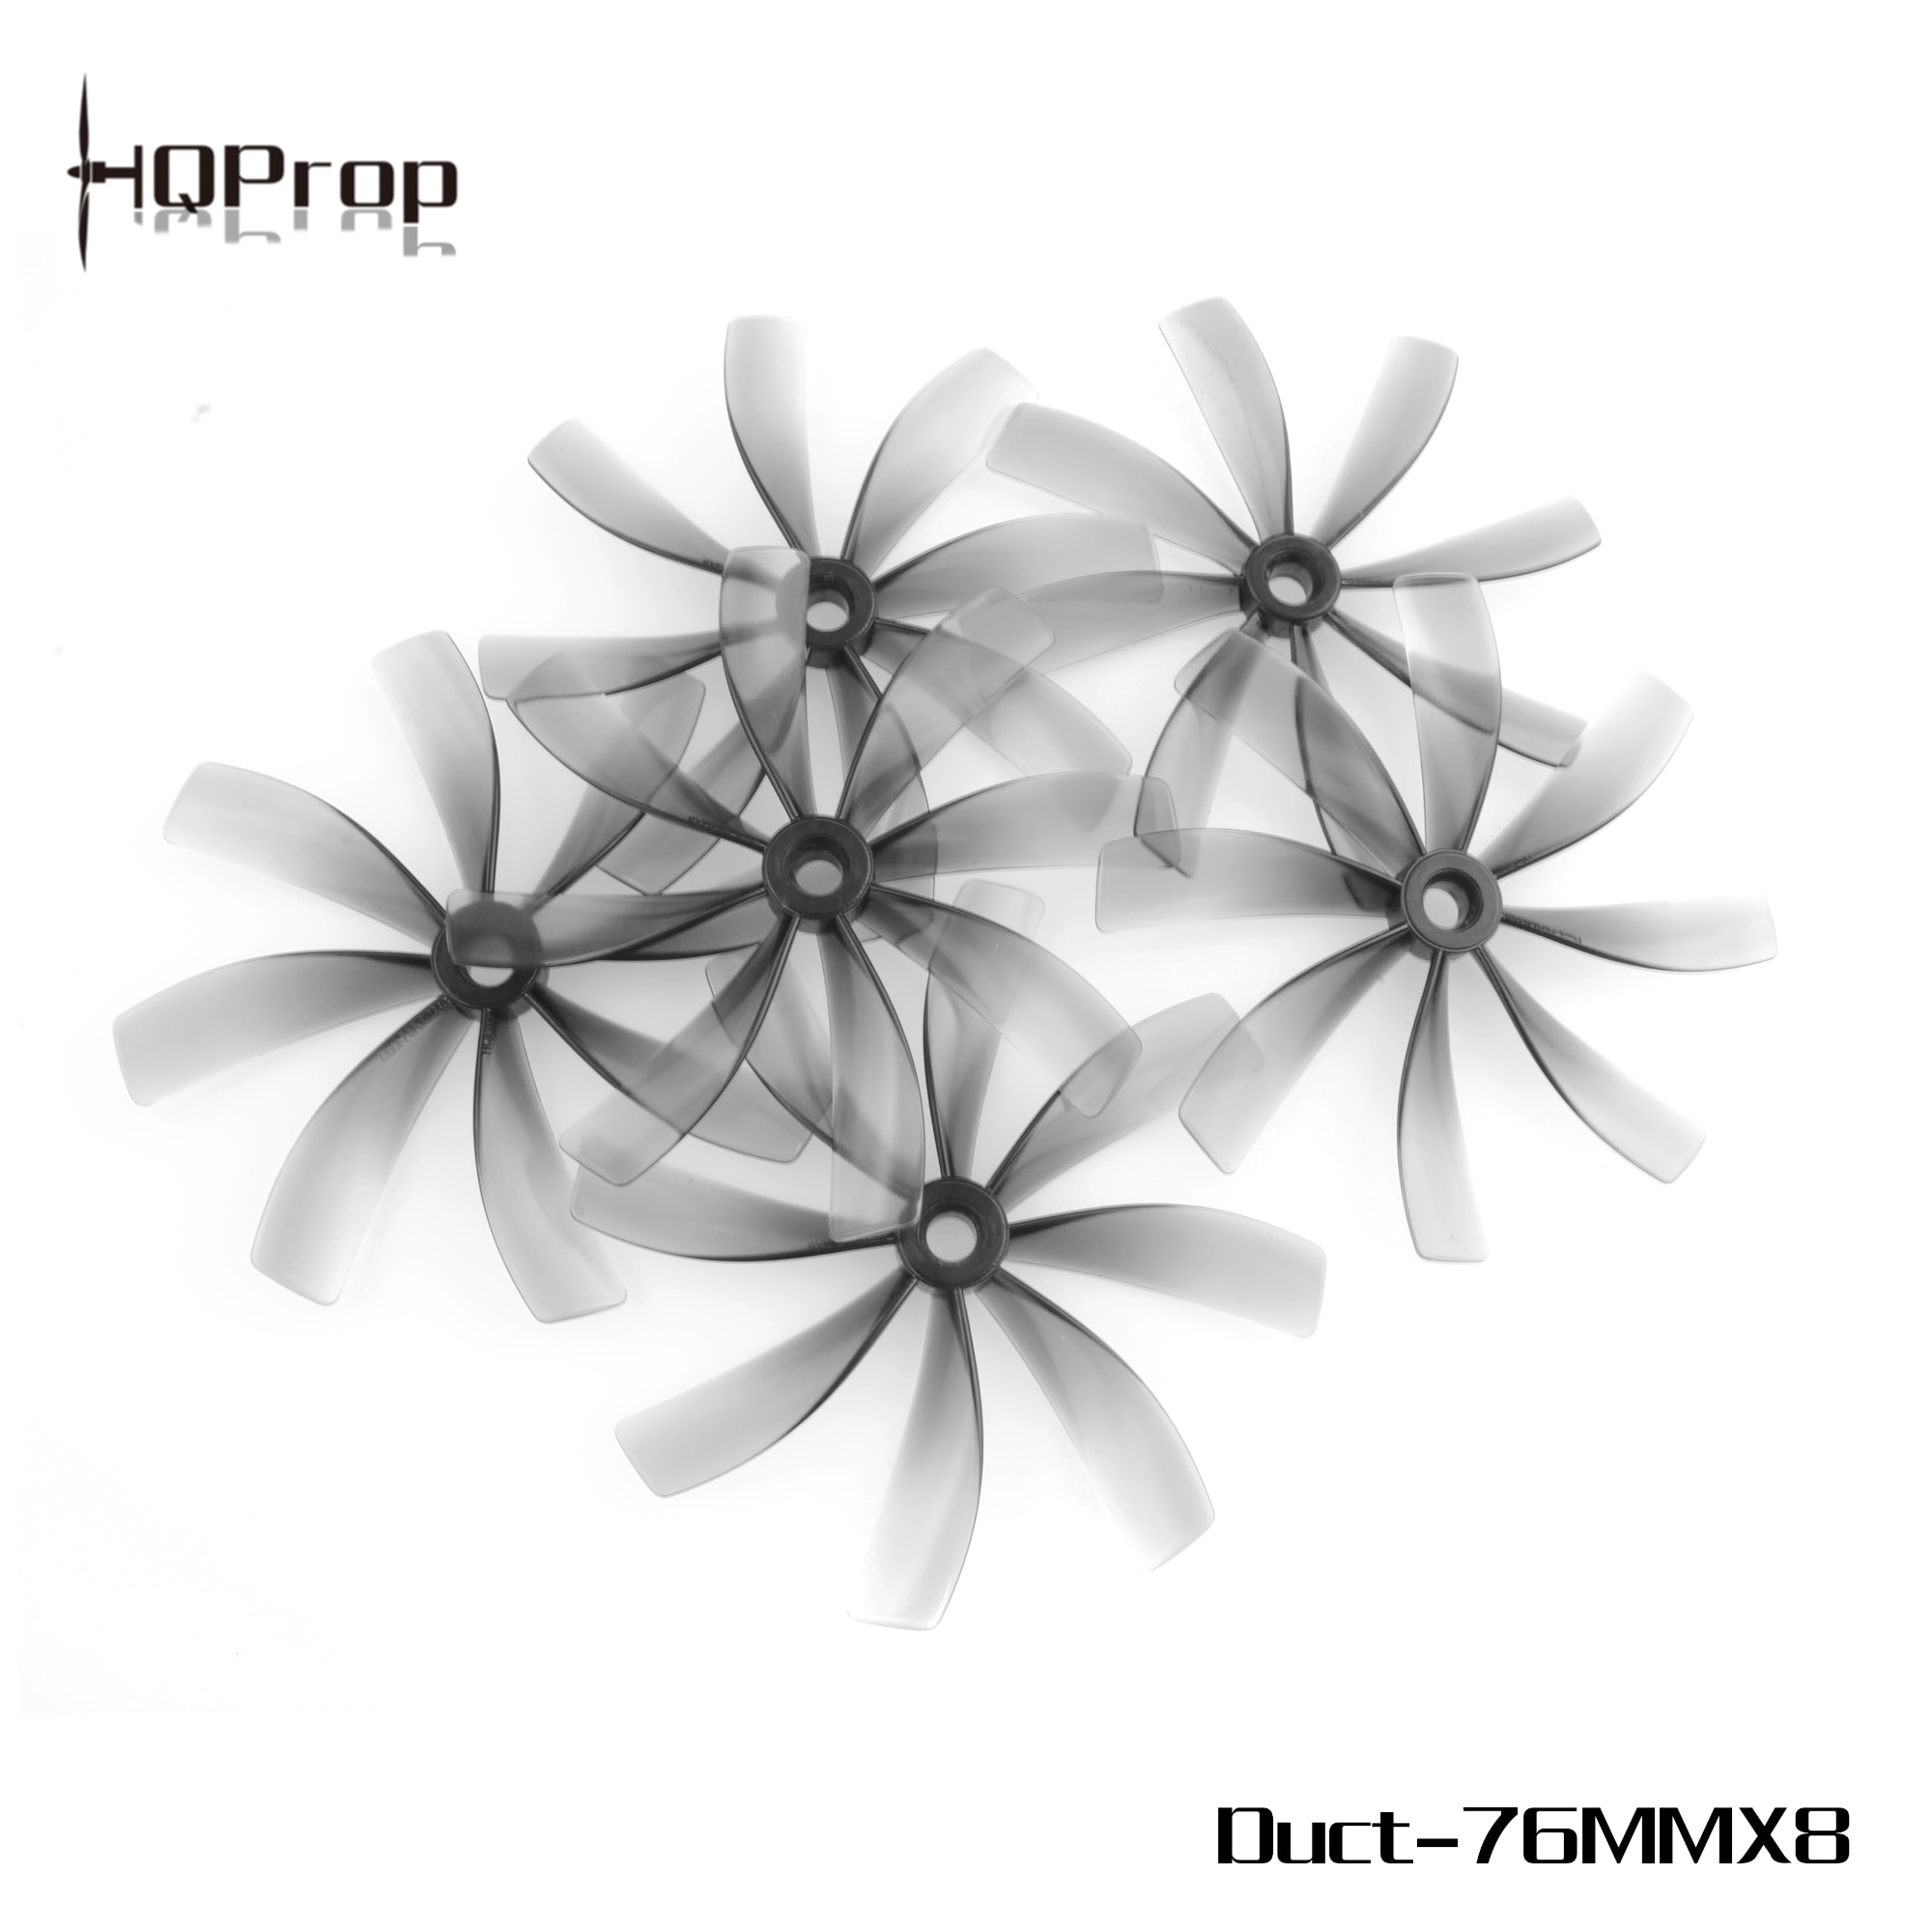 HQPROP 76MMX8 76mm 8-Blade PC Propeller for RC FPV Racing Freestyle 3inch Cinewhoop Ducted Drones Replacement DIY Parts